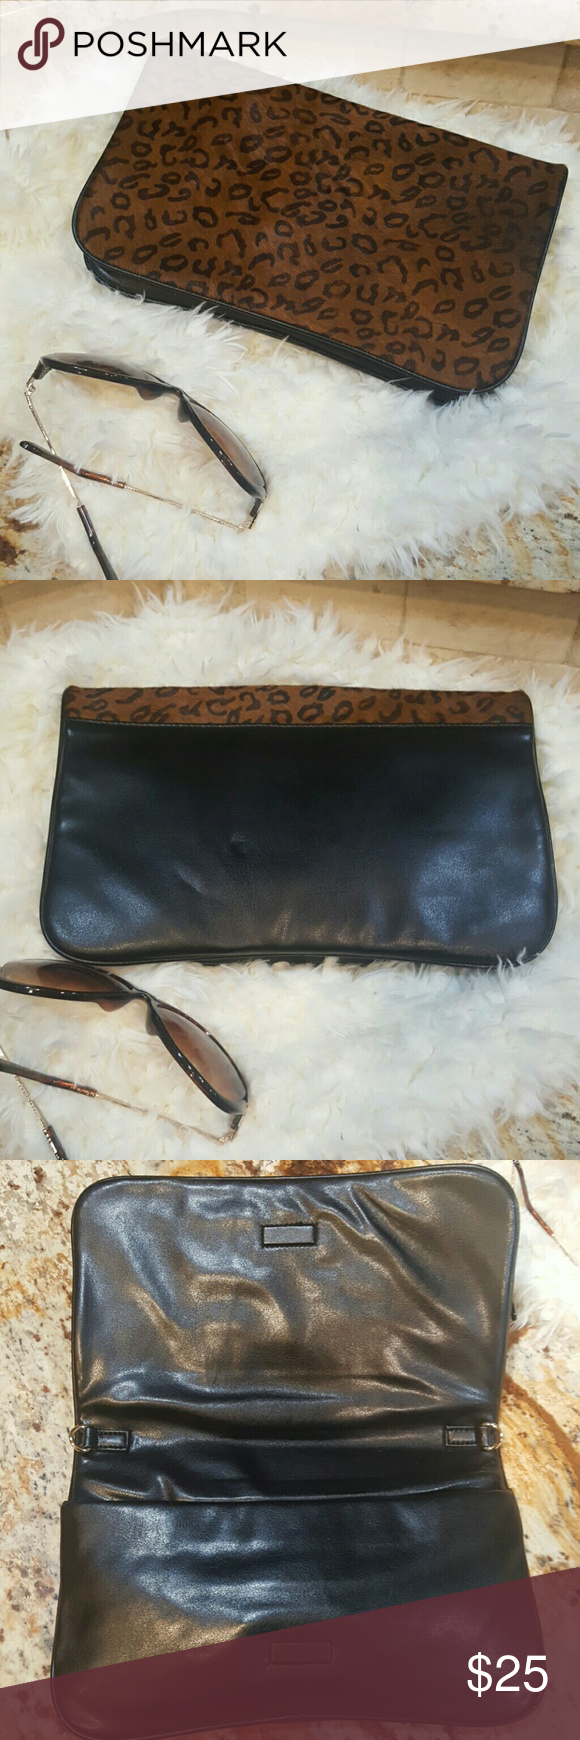 LOFT Leather Clutch Pre-owned black leather/leopard calf hair Ann Taylor Loft Clutch!  This is a great little clutch!  Exterior features super soft leather, and leopard print calf hair.  Interior has a zipper to secure belongings from falling out.  No flaws of mention.  Chain is missing. LOFT Bags Clutches & Wristlets